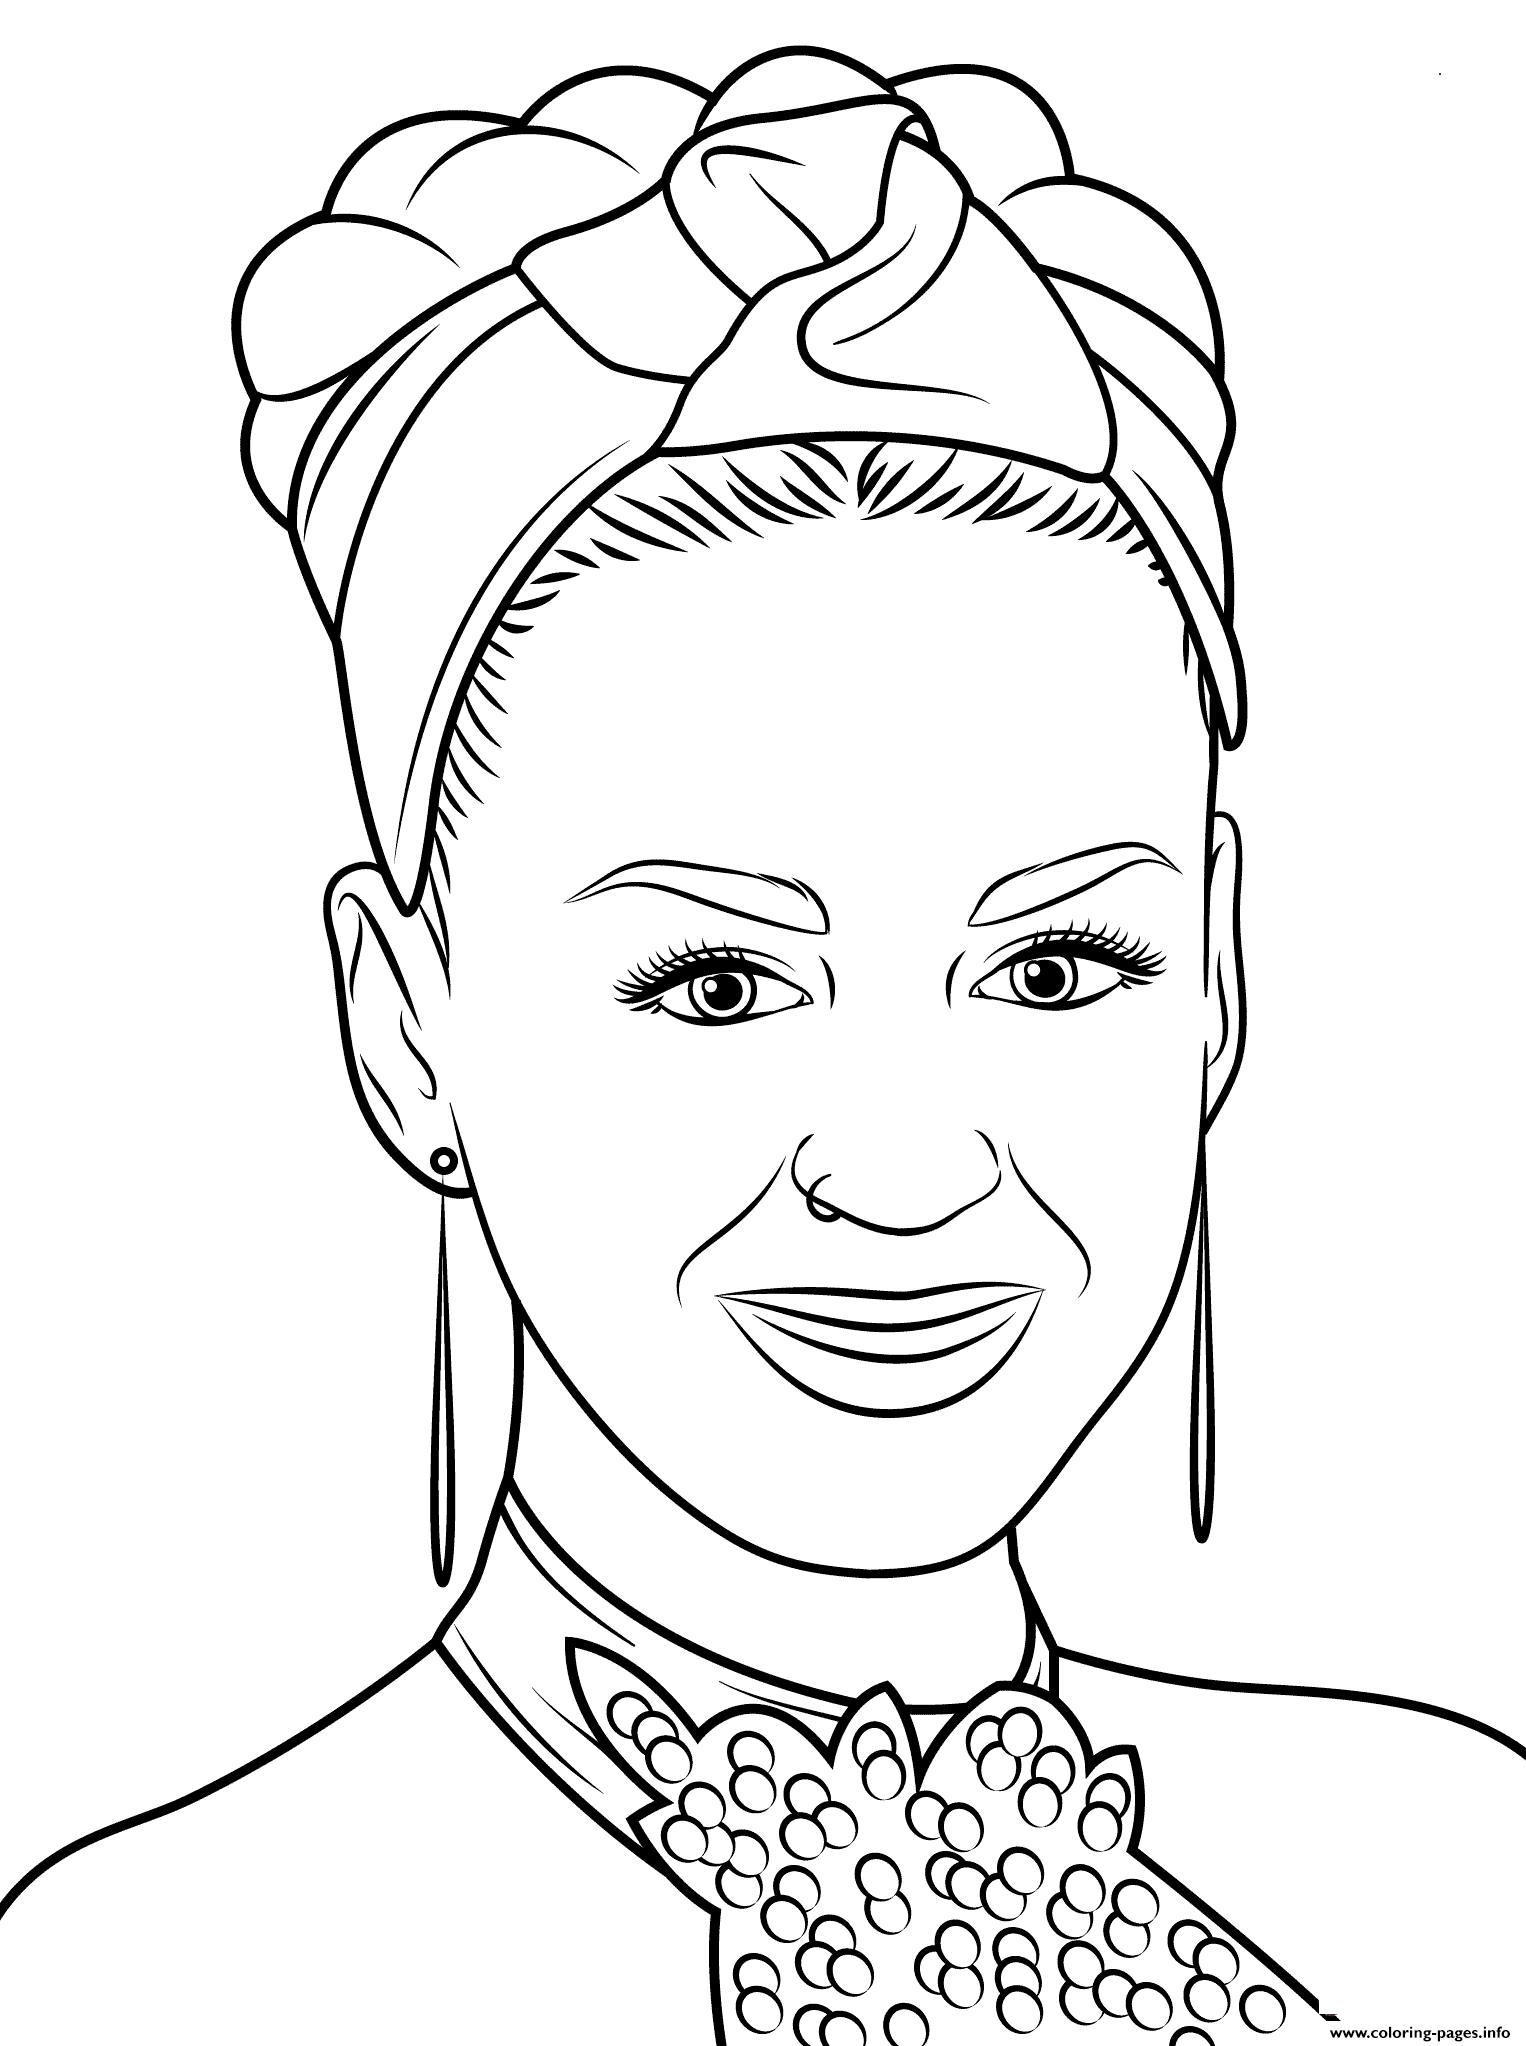 michael jackson celebrity coloring pages - Celebrity Coloring Pages Print